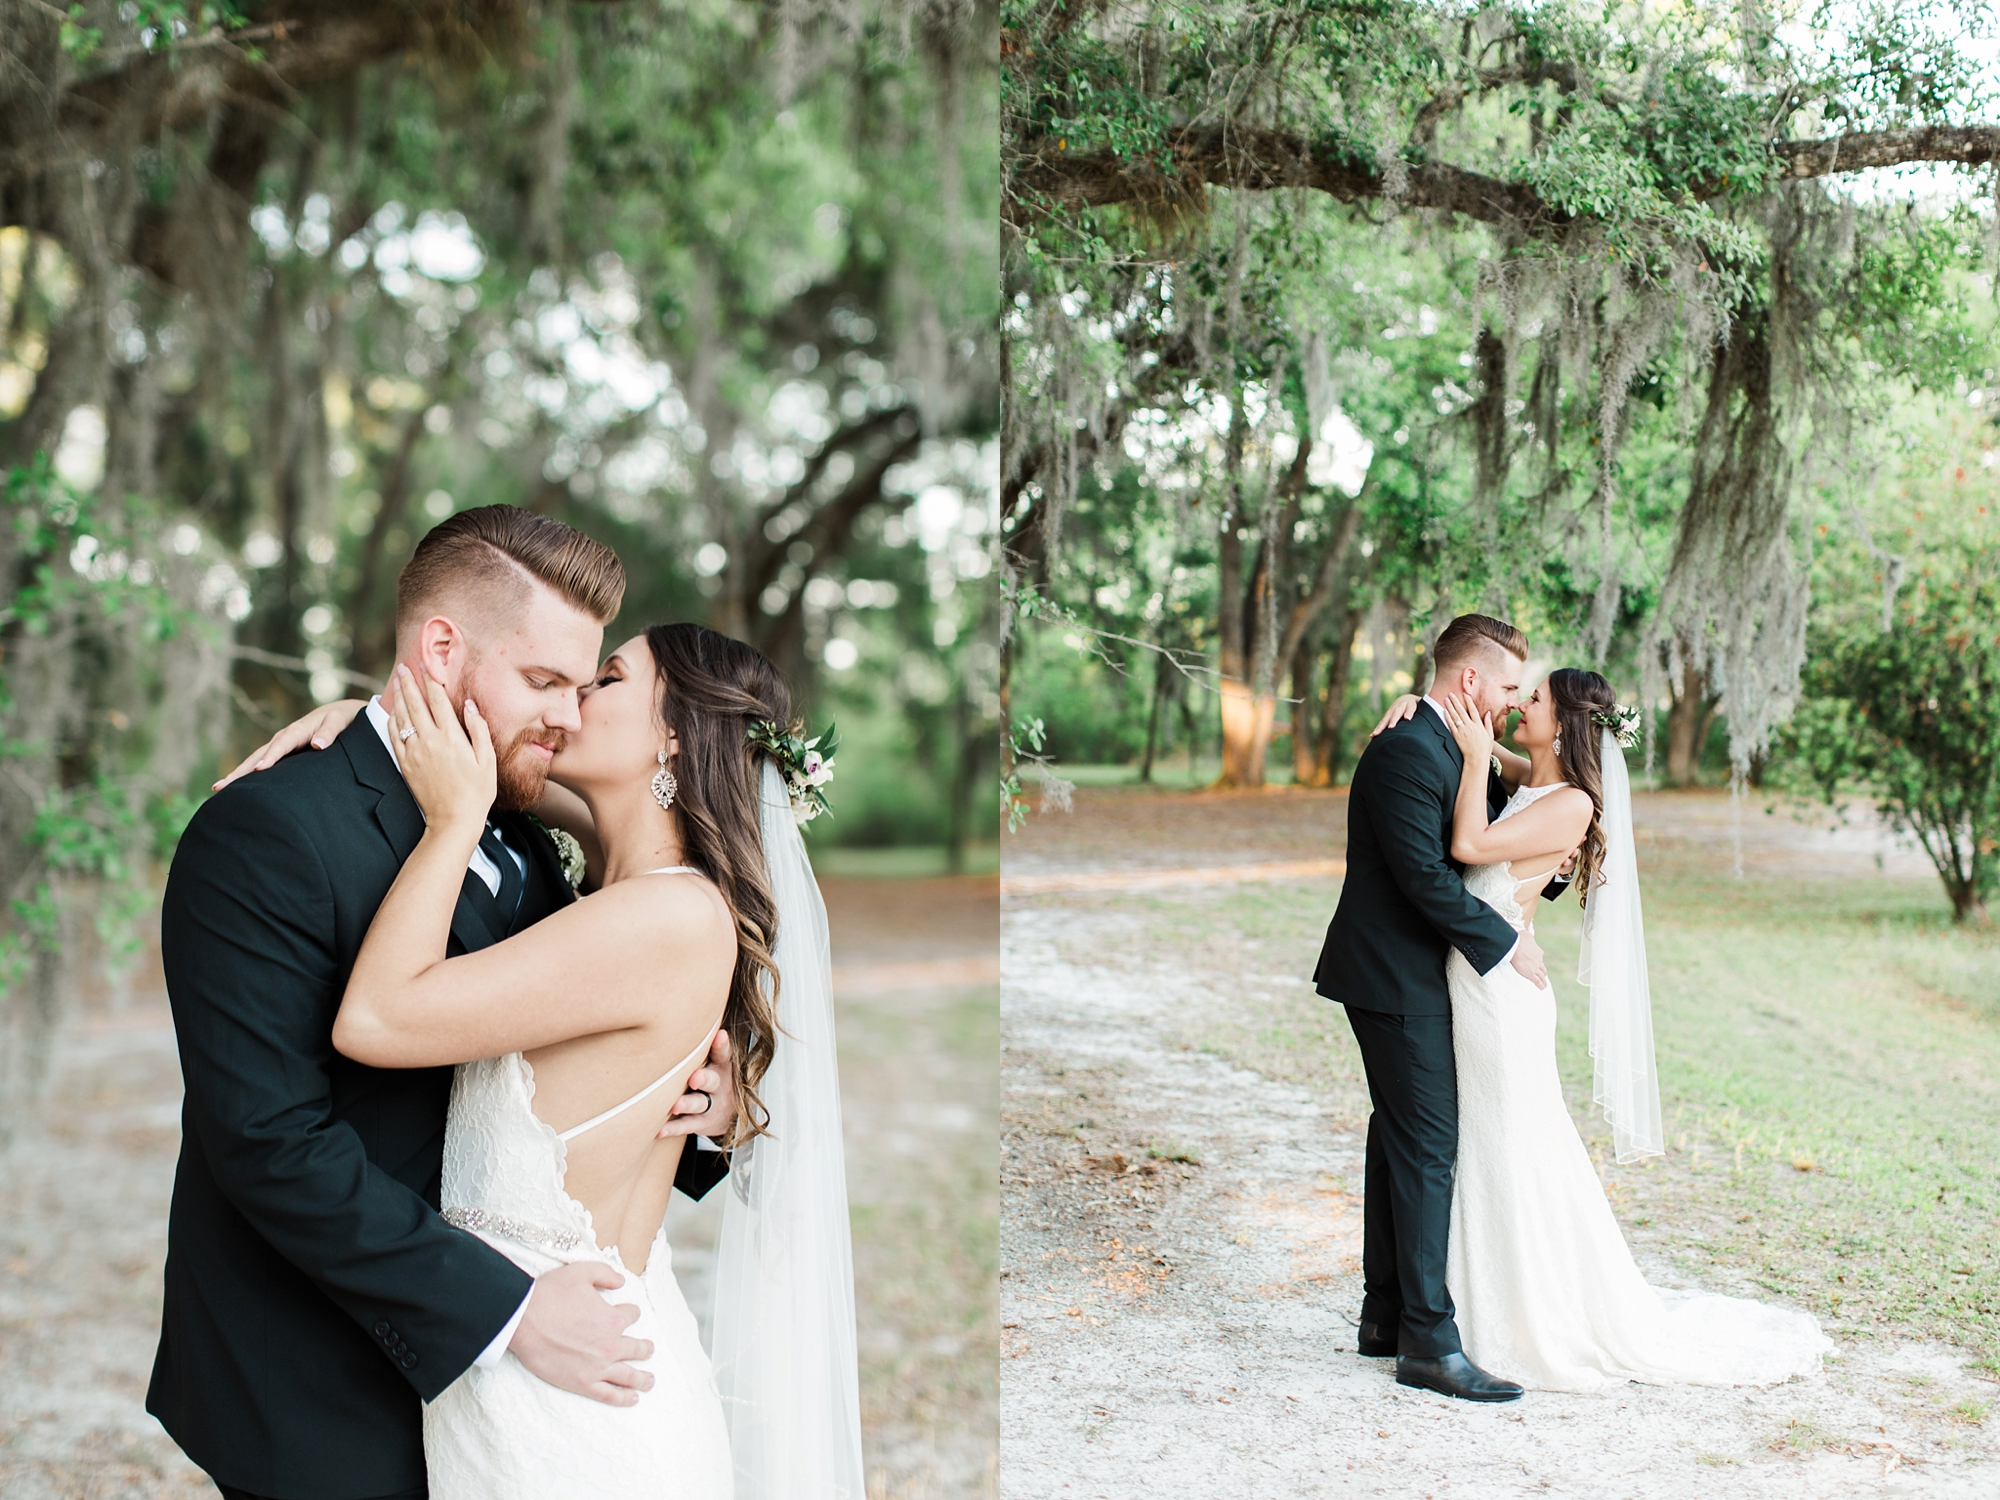 Designer Wedding Dress Gold Coast: Lance & MeredithChandler OaksBarn Wedding